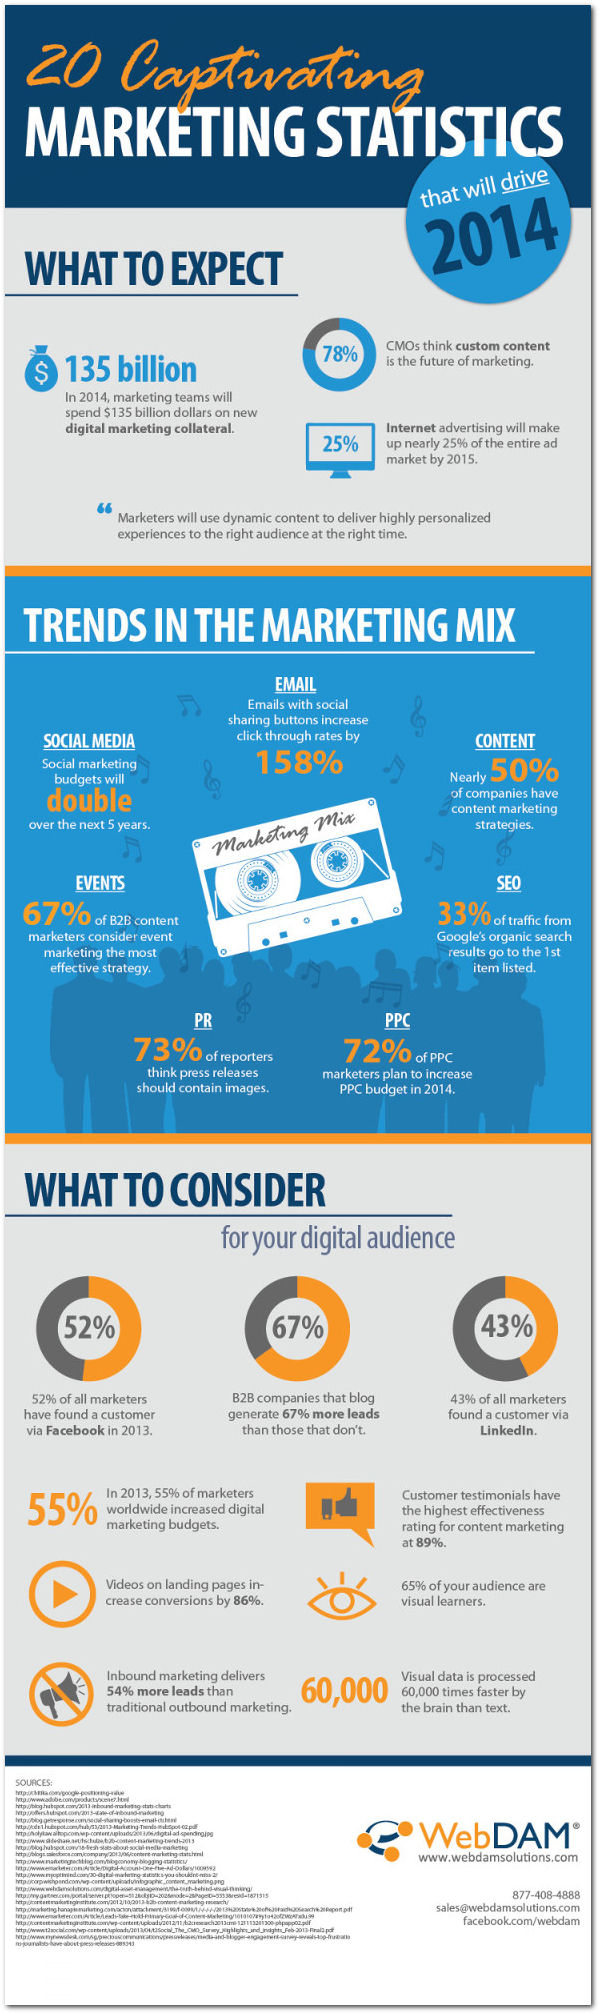 20 Statistics That Will Drive 2014 Marketing Strategies